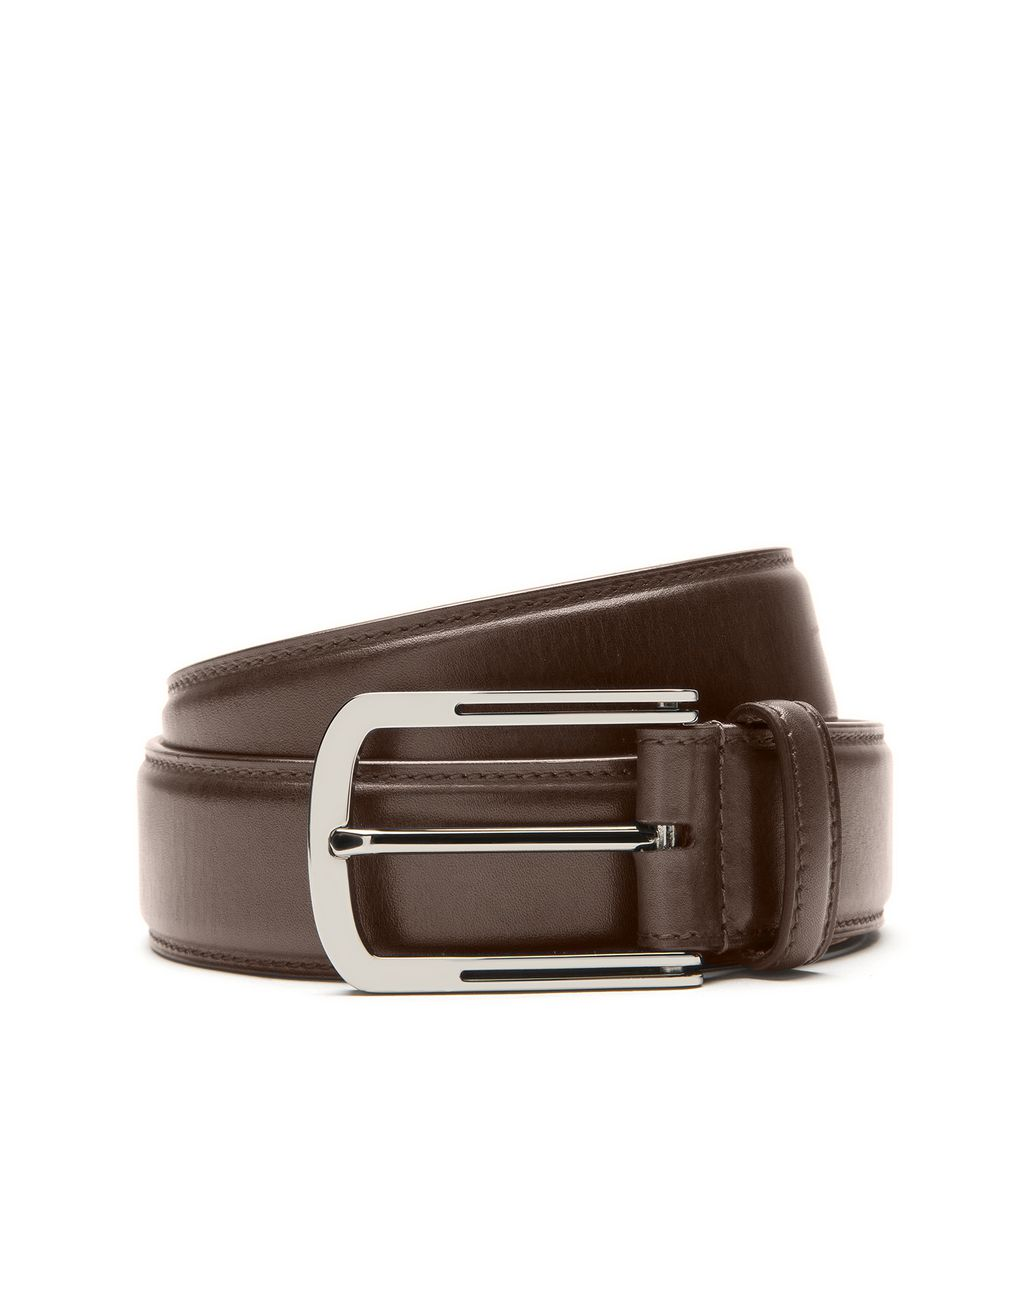 BRIONI Brown Belt in Calfskin Leather Belt Man r